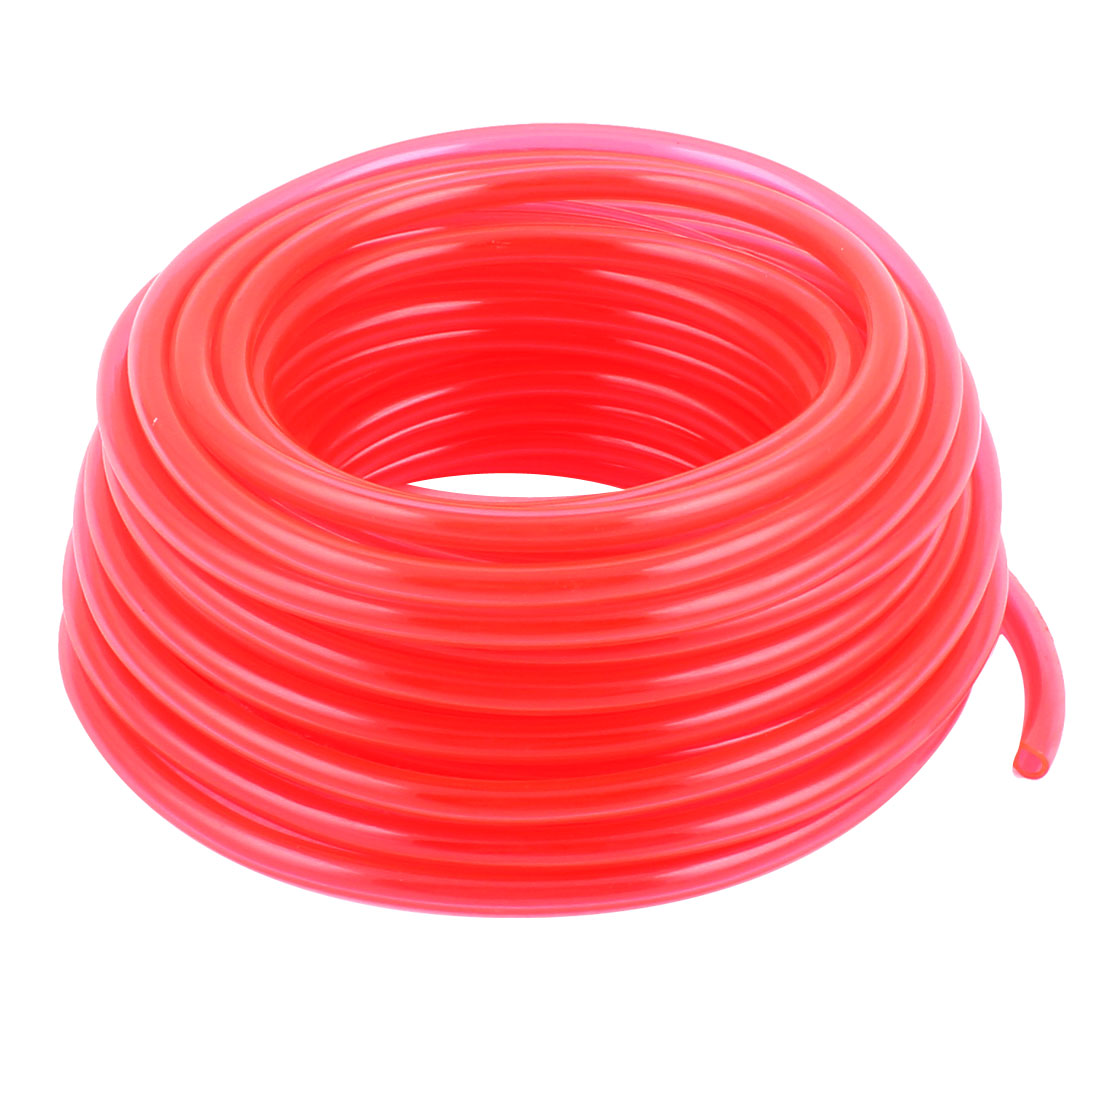 11M Length 6mm x 4mm Dia Pneumatic Polyurethane PU Air Tube Tubing Pipe Hose Red